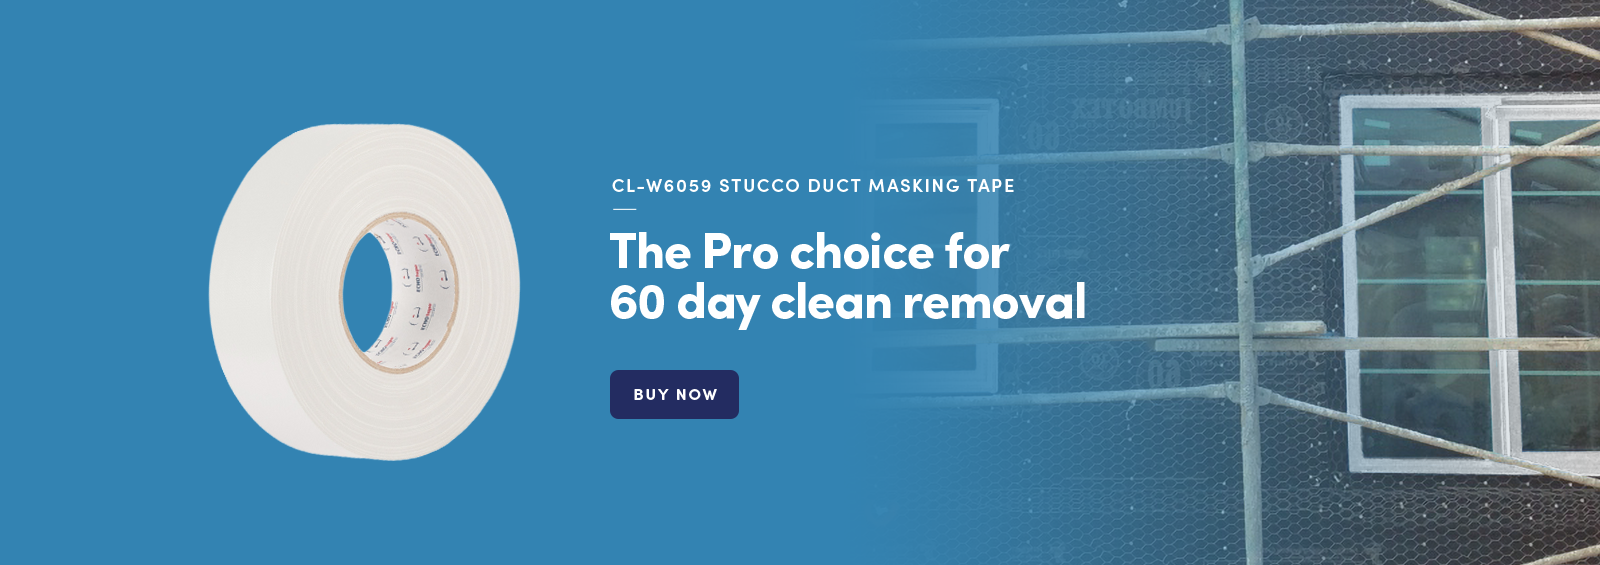 The Pro choice for 60 day clean removal